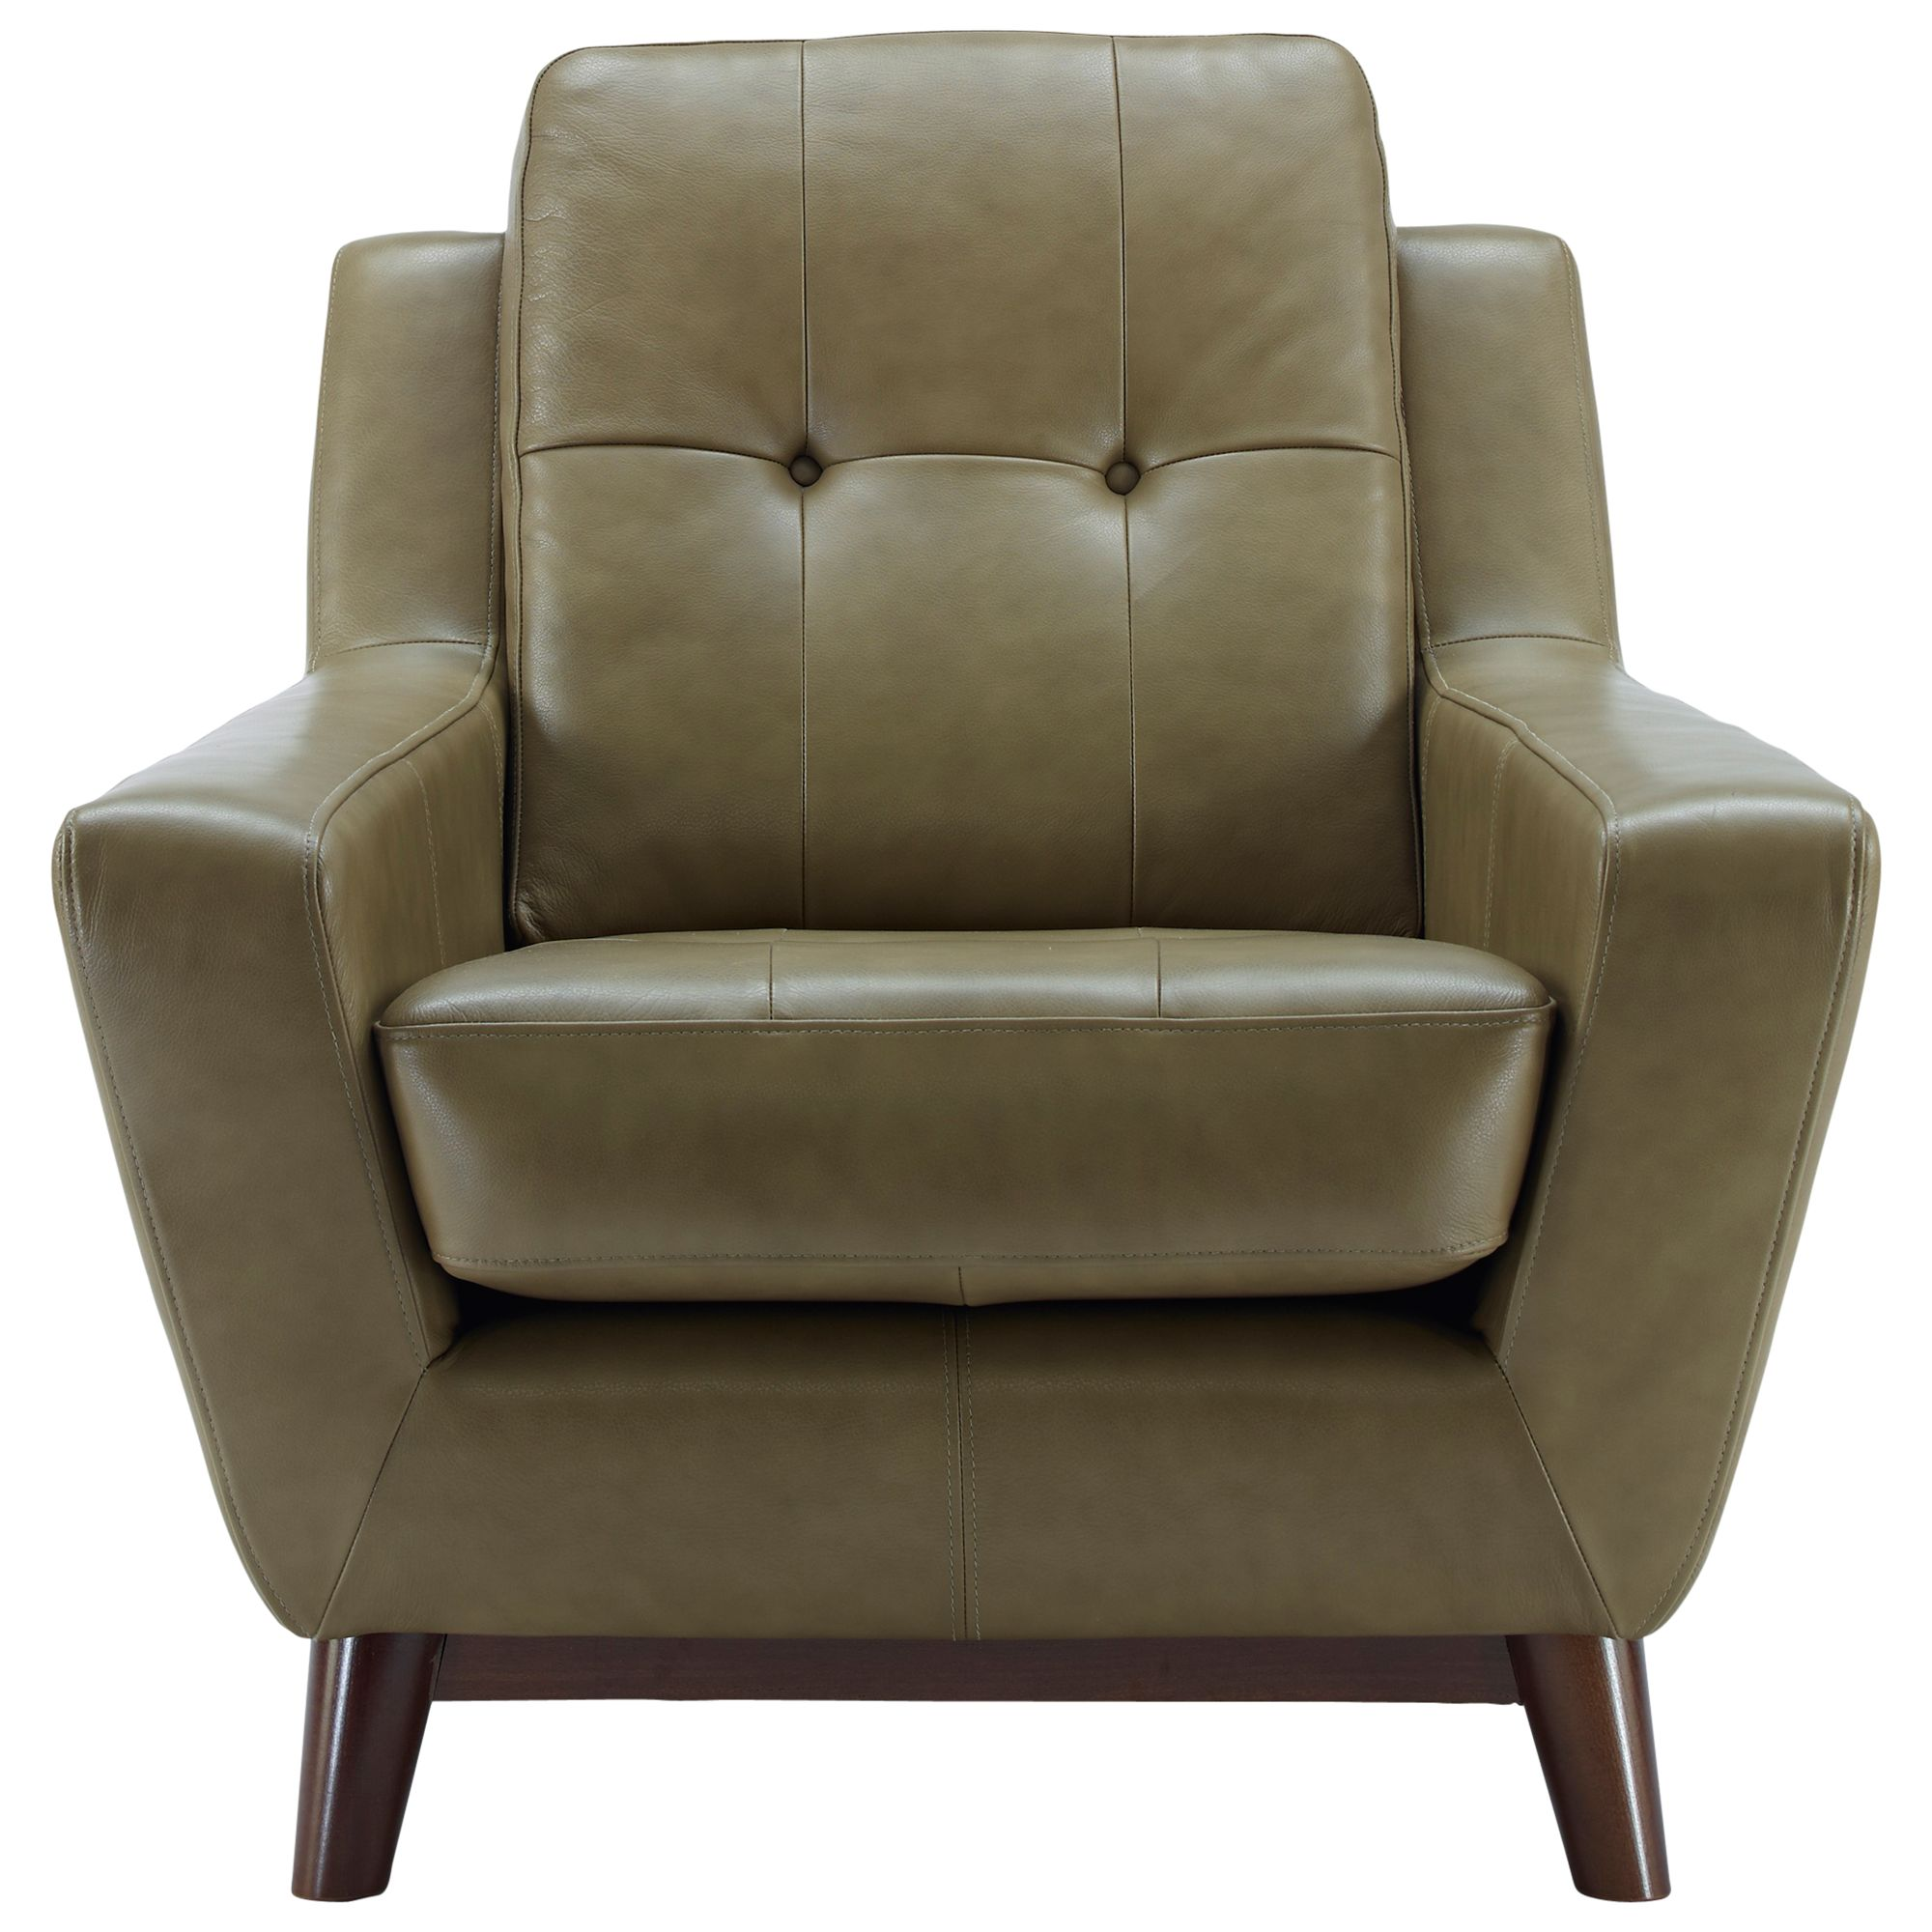 Pistachio Green Leather Sofa: Buy Cheap Green Leather Armchair